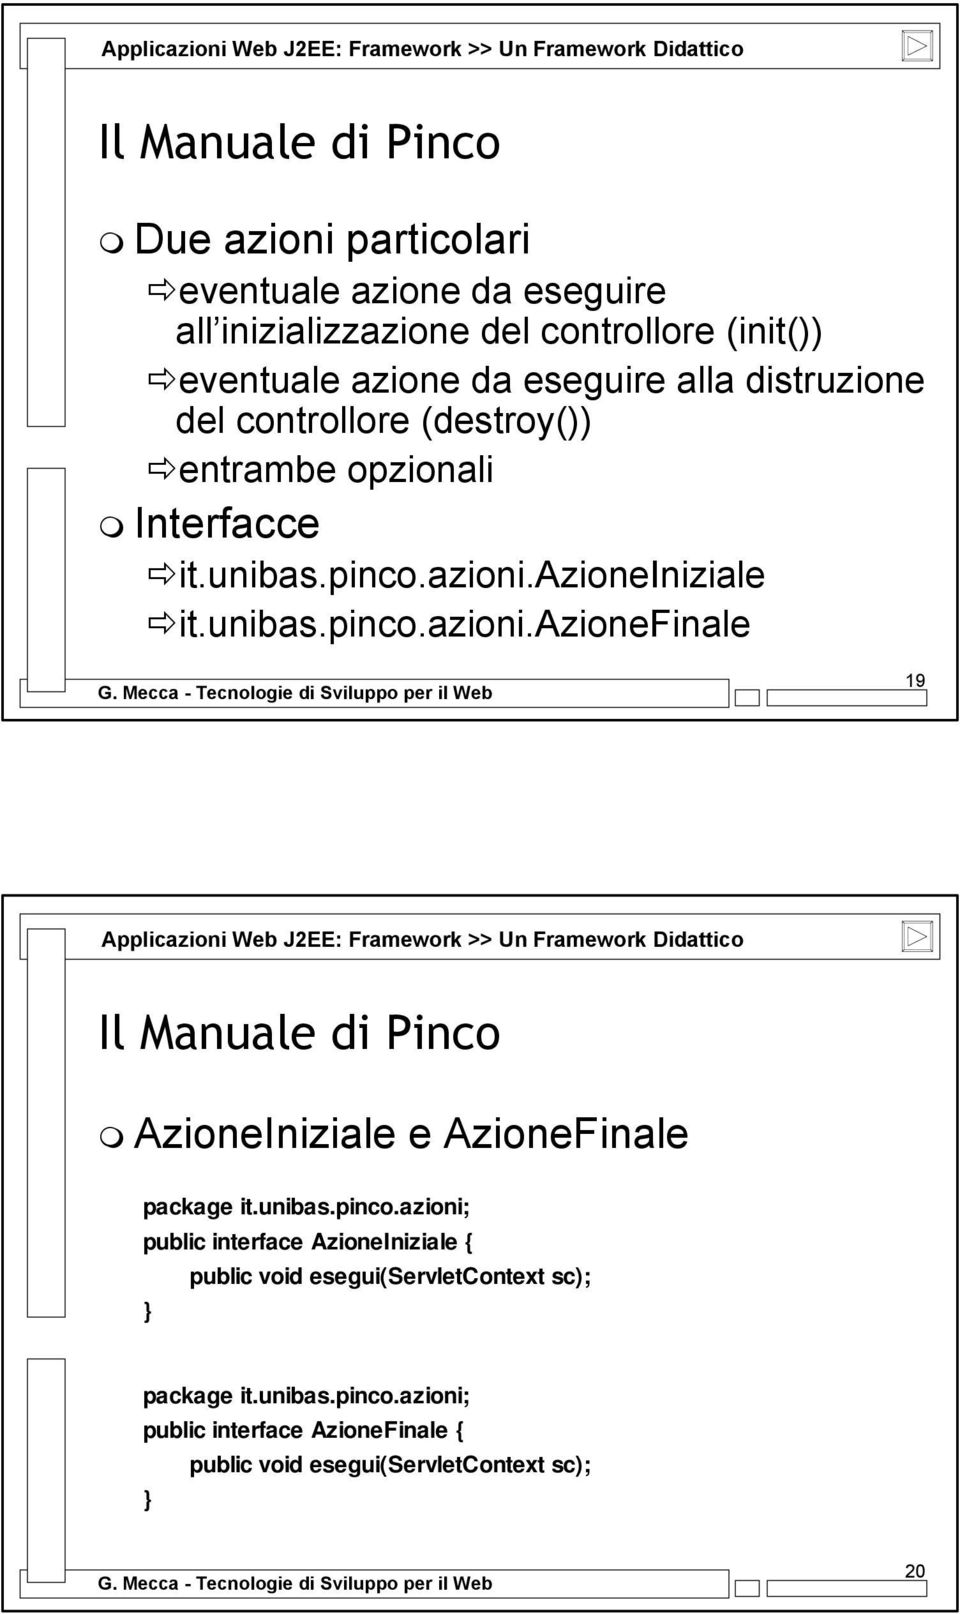 azioneiniziale it.unibas.pinco.azioni.azionefinale 19 AzioneIniziale e AzioneFinale package it.unibas.pinco.azioni; public interface AzioneIniziale { public void esegui(servletcontext sc); } package it.